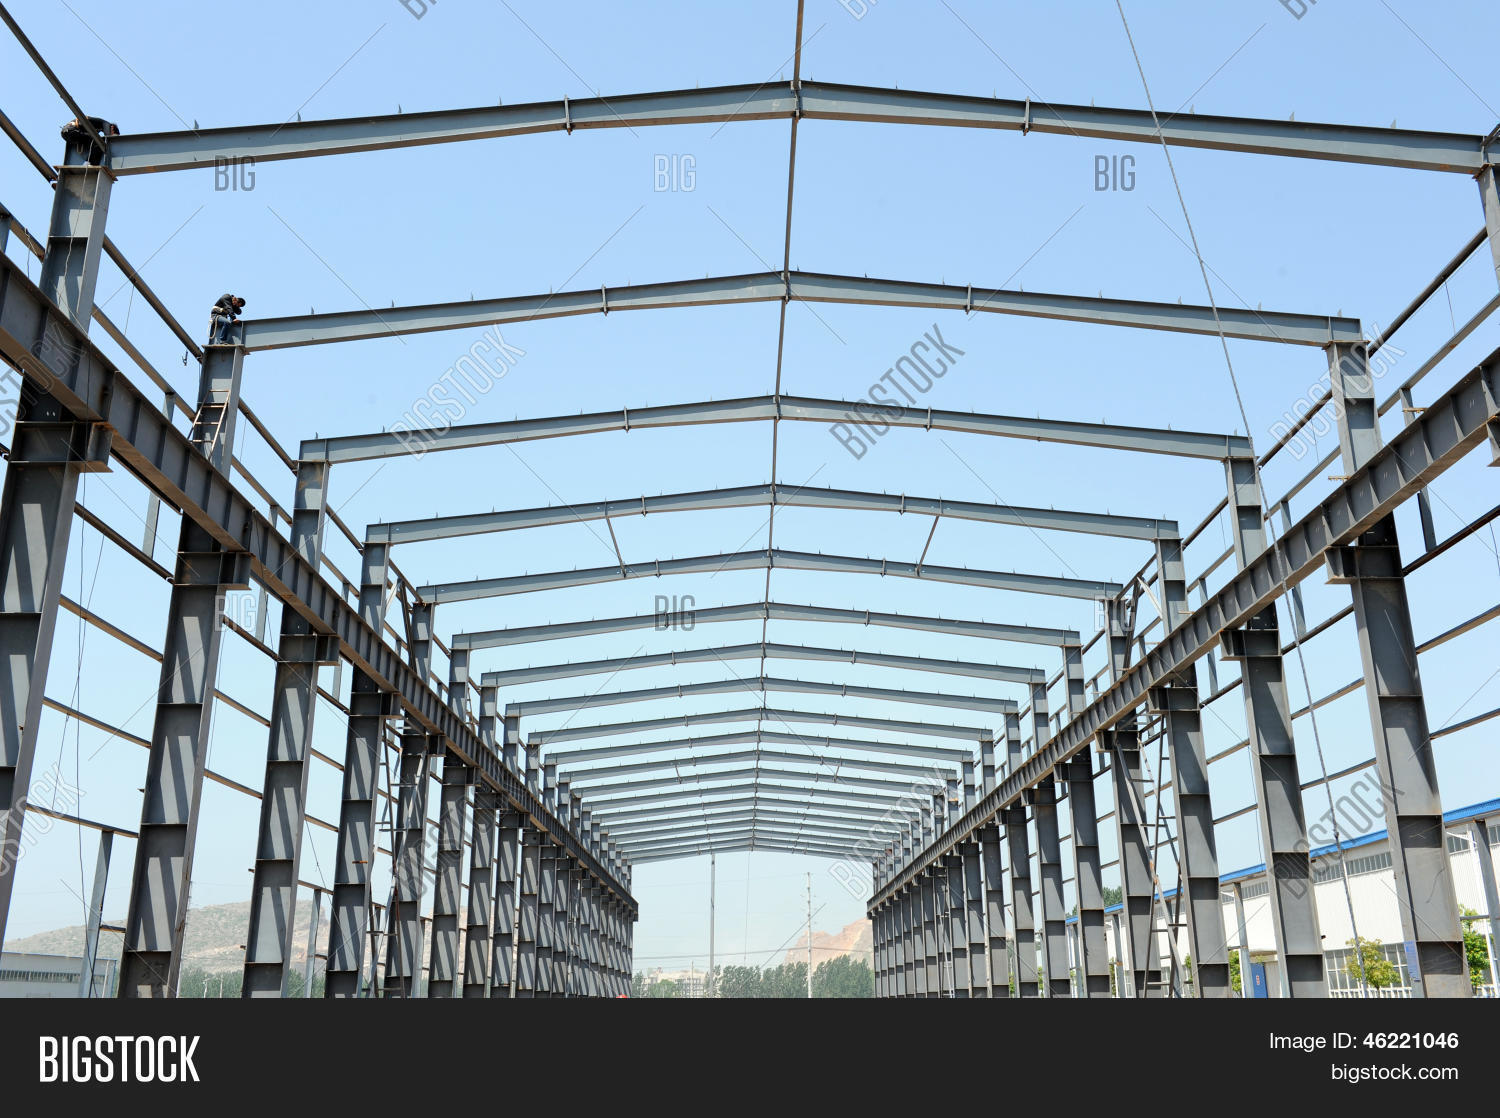 Steel frame structure building image photo bigstock for Stahlbau aussteifung